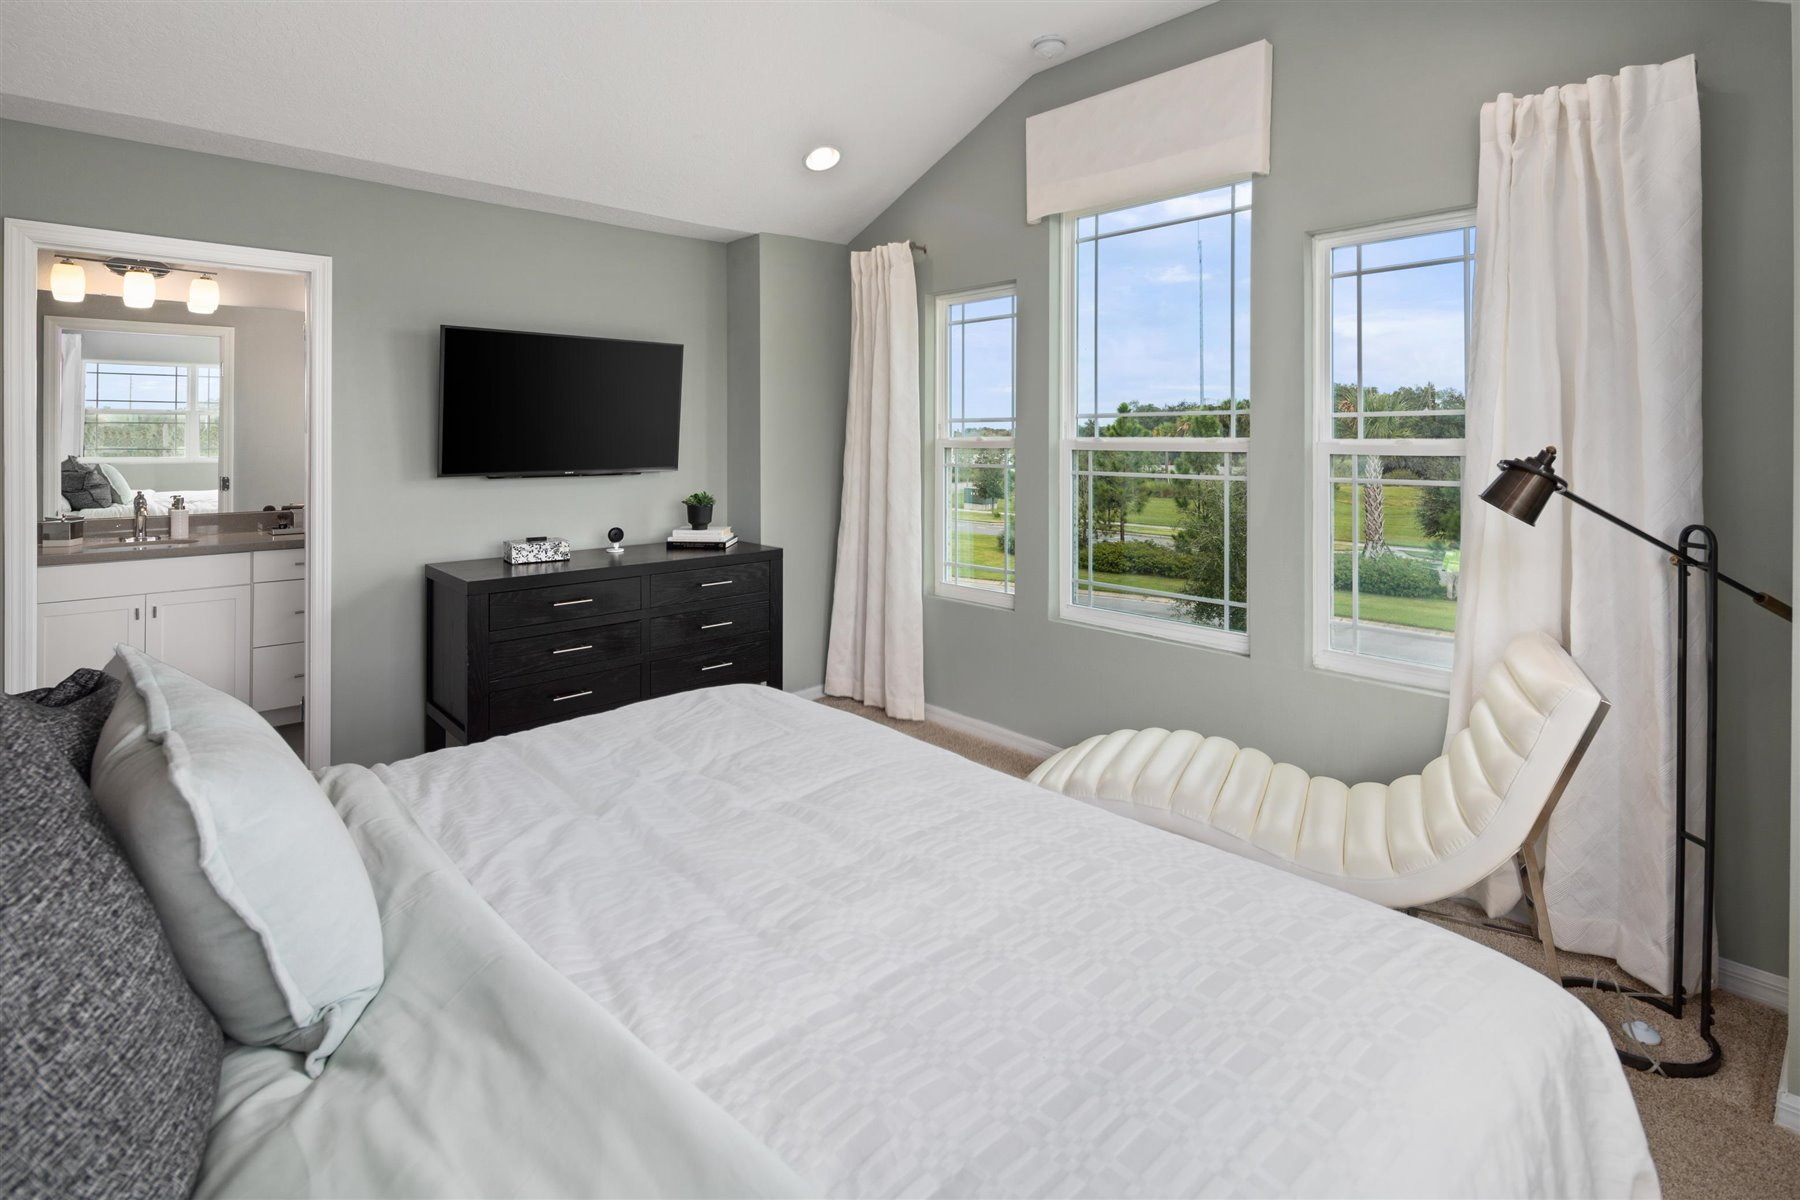 Marabel III Plan Bedroom at Randal Walk in Orlando Florida by Mattamy Homes